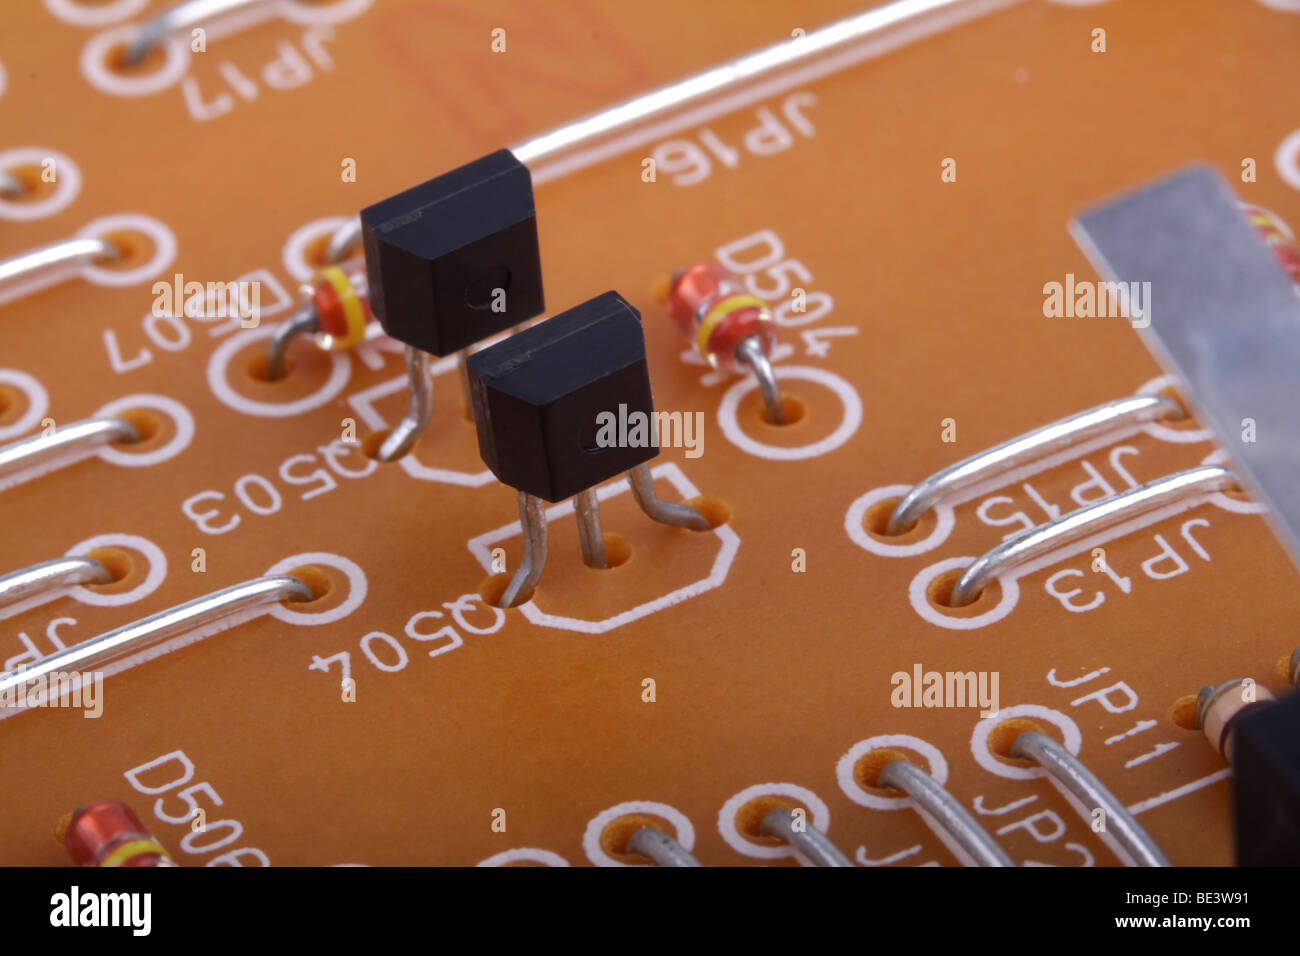 Wiring Board Stock Photos & Wiring Board Stock Images - Alamy on